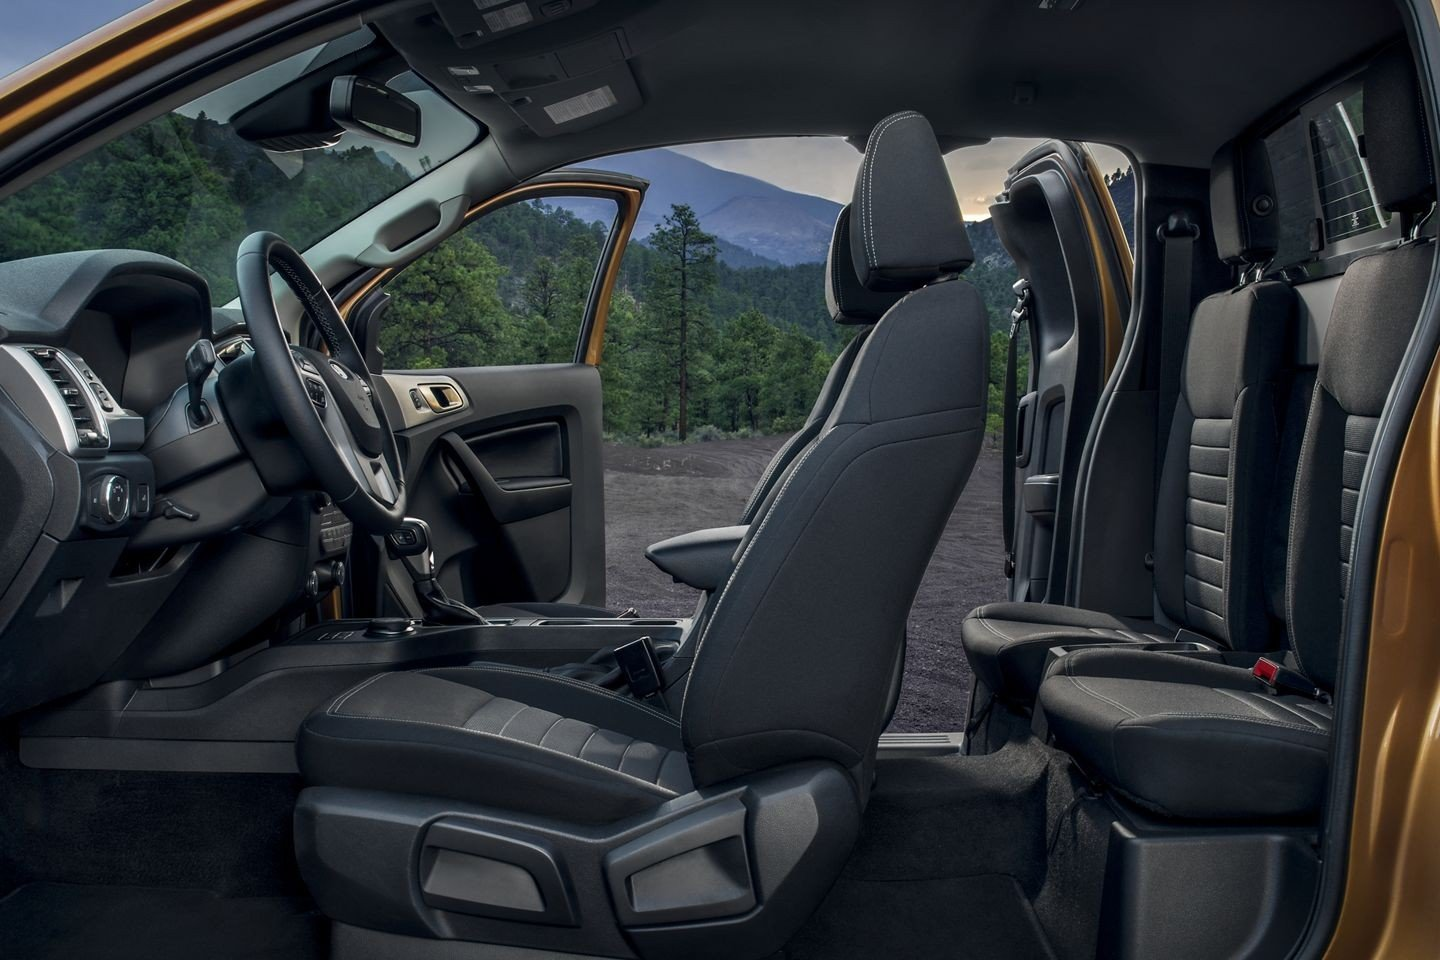 2019 Ford Ranger Interior Features & Technology